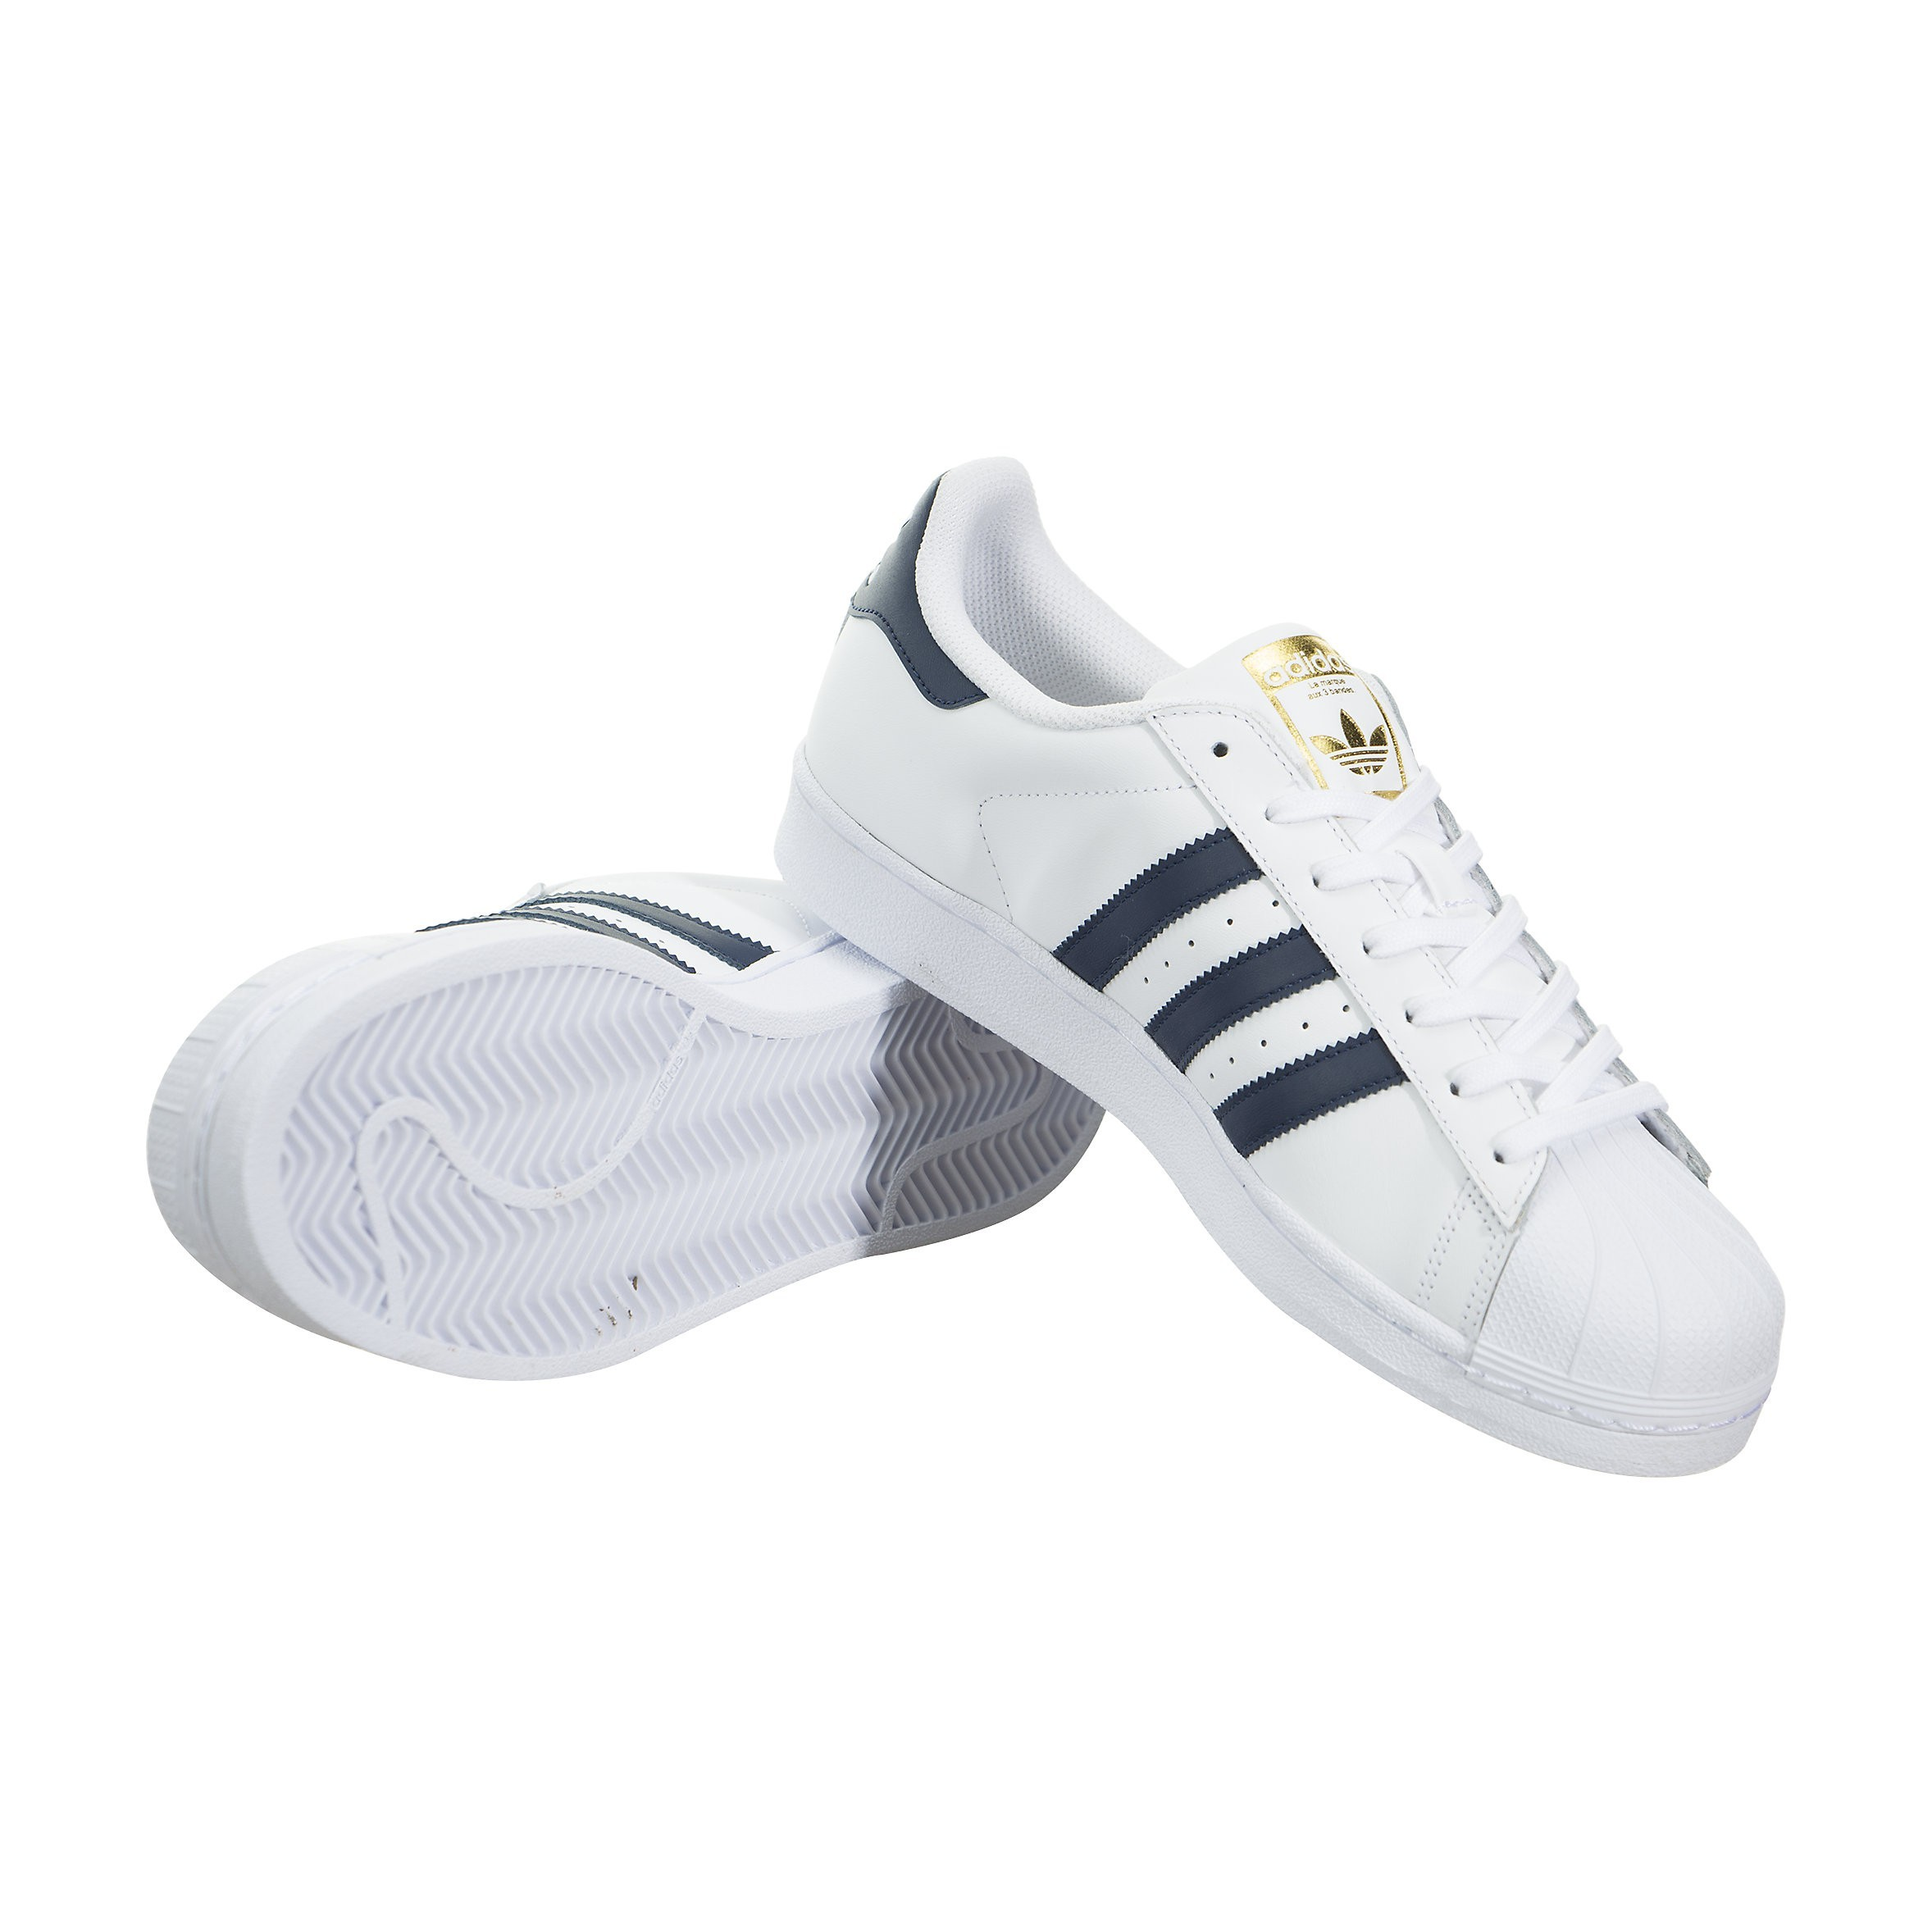 adidas superstar foundation blancas